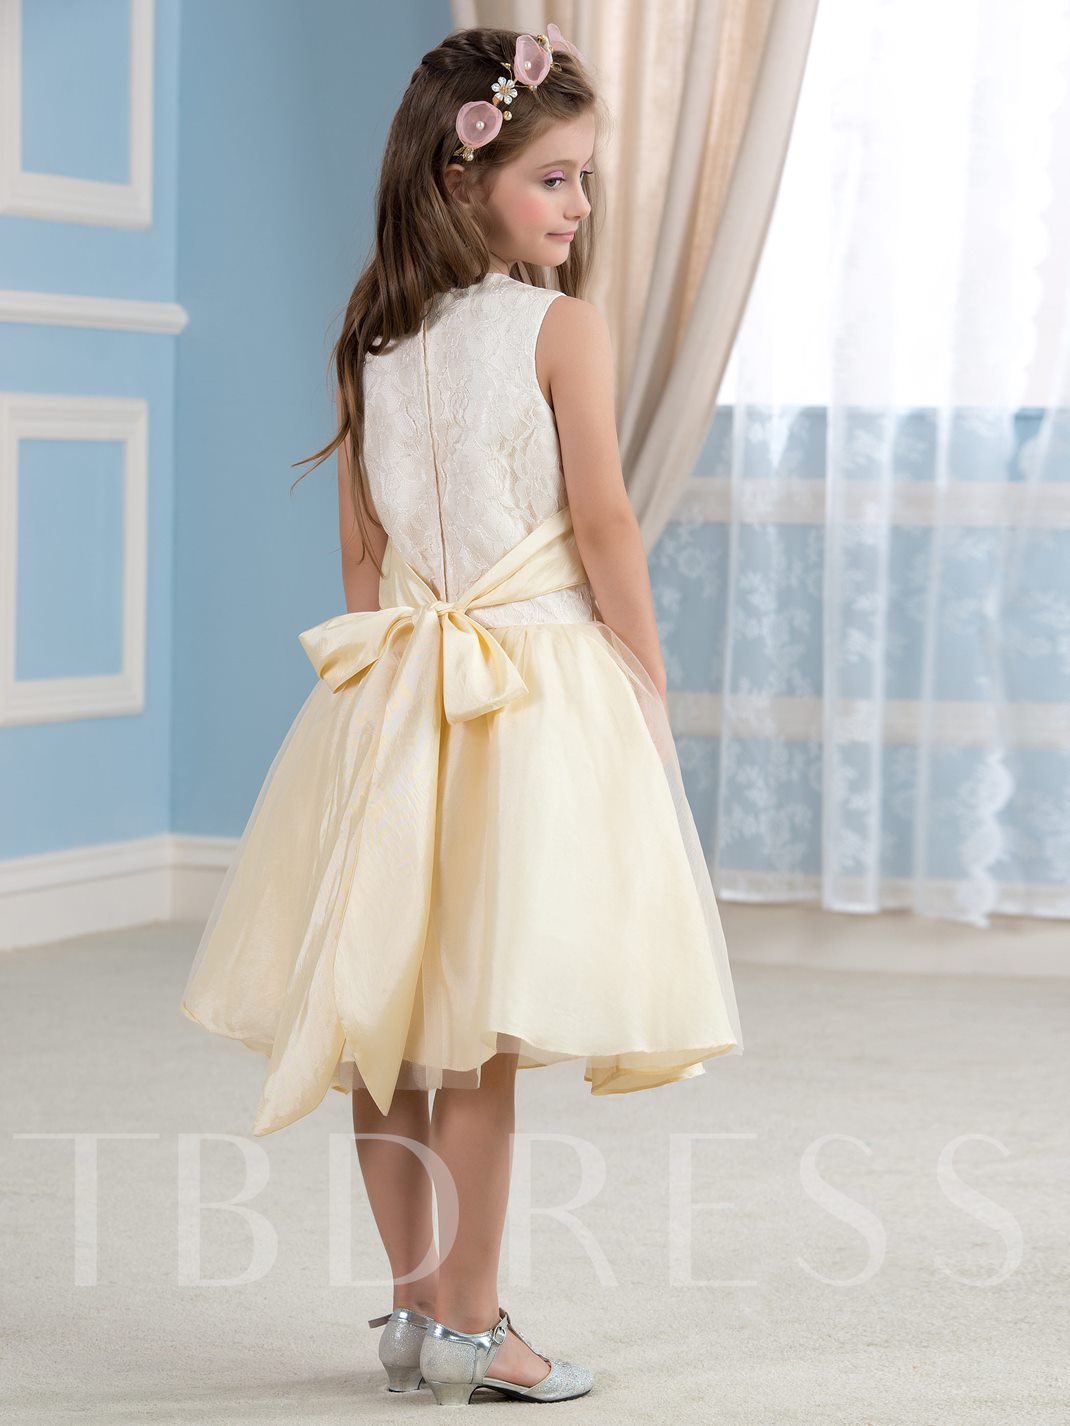 Pearls Neck Lace Flower Tea Length Flower Girl Dress Tbdress